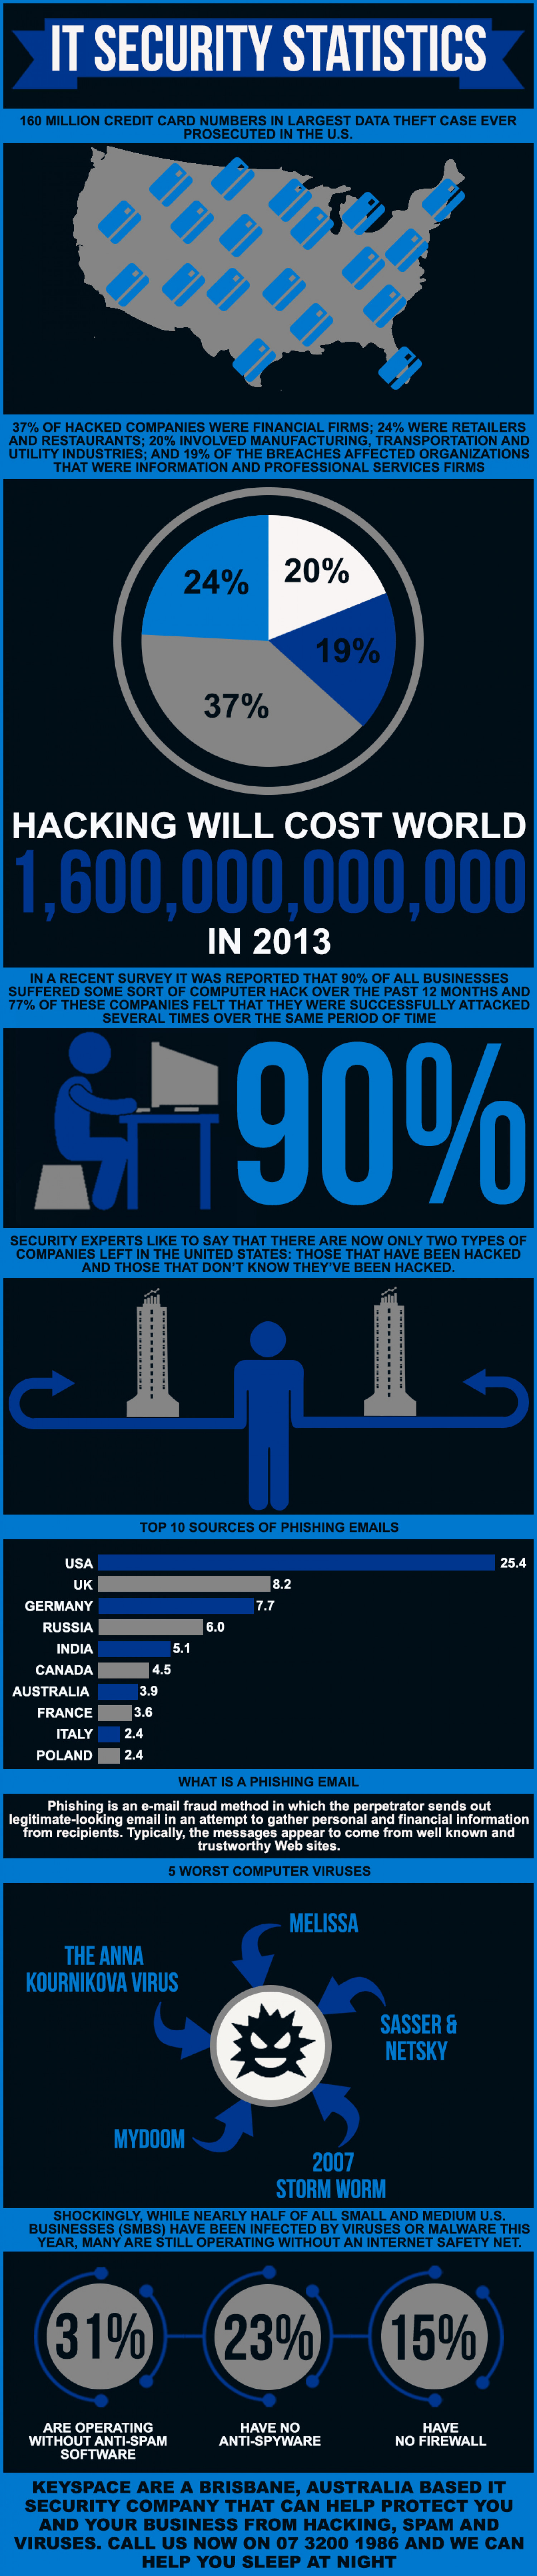 IT Security Statistics, why you should be afraid Infographic